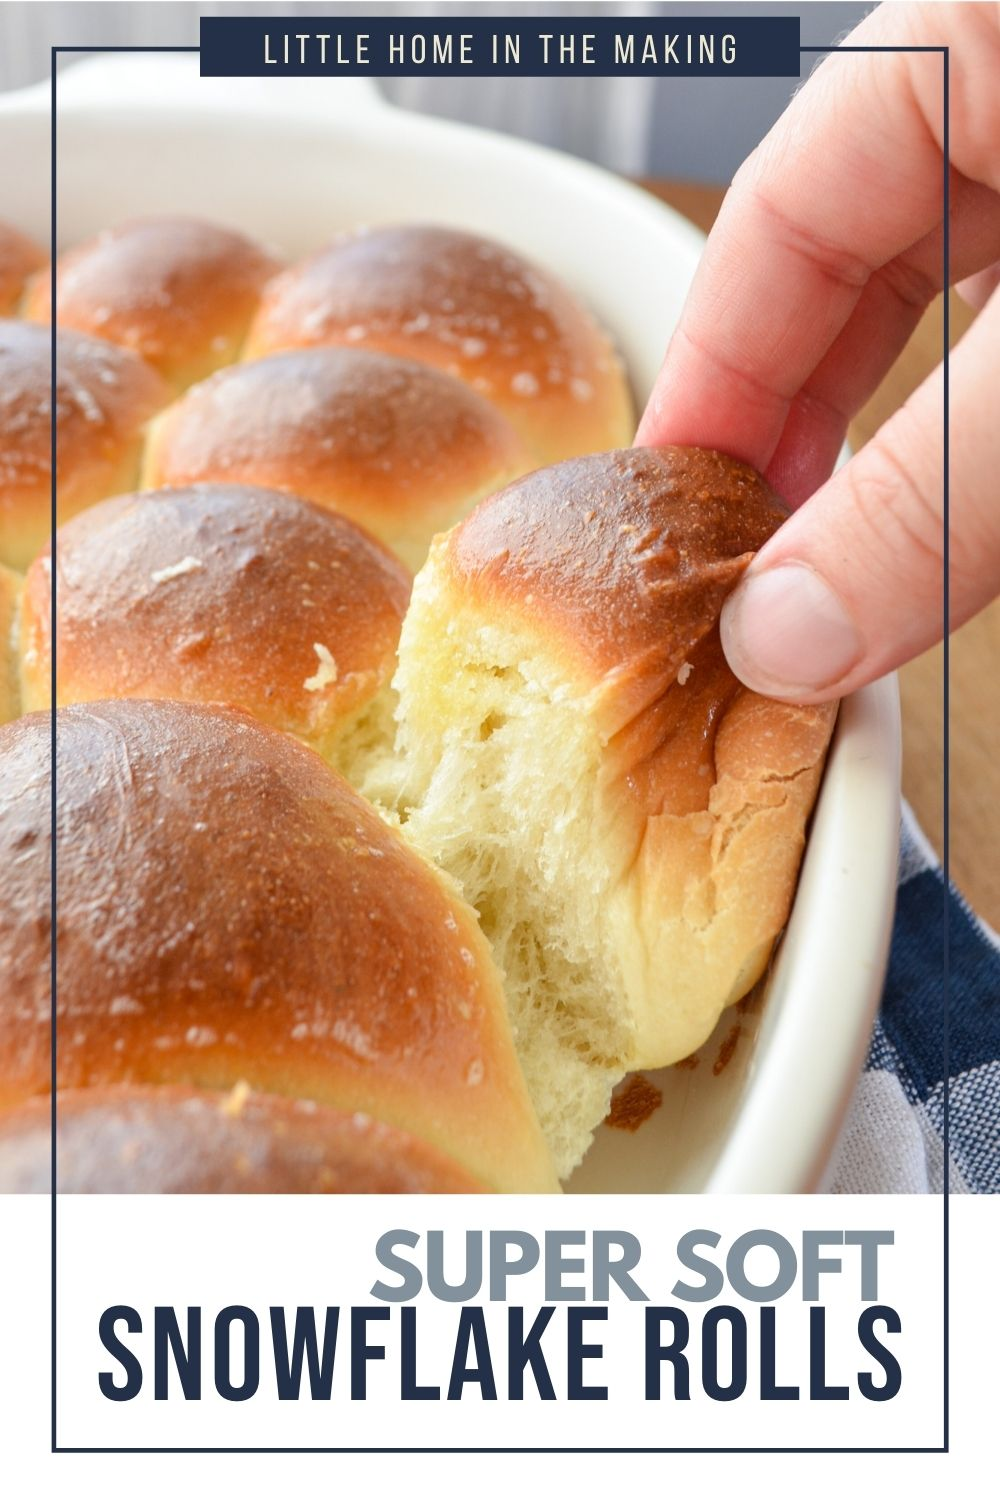 A soft dinner roll being pulled from a baking dish.